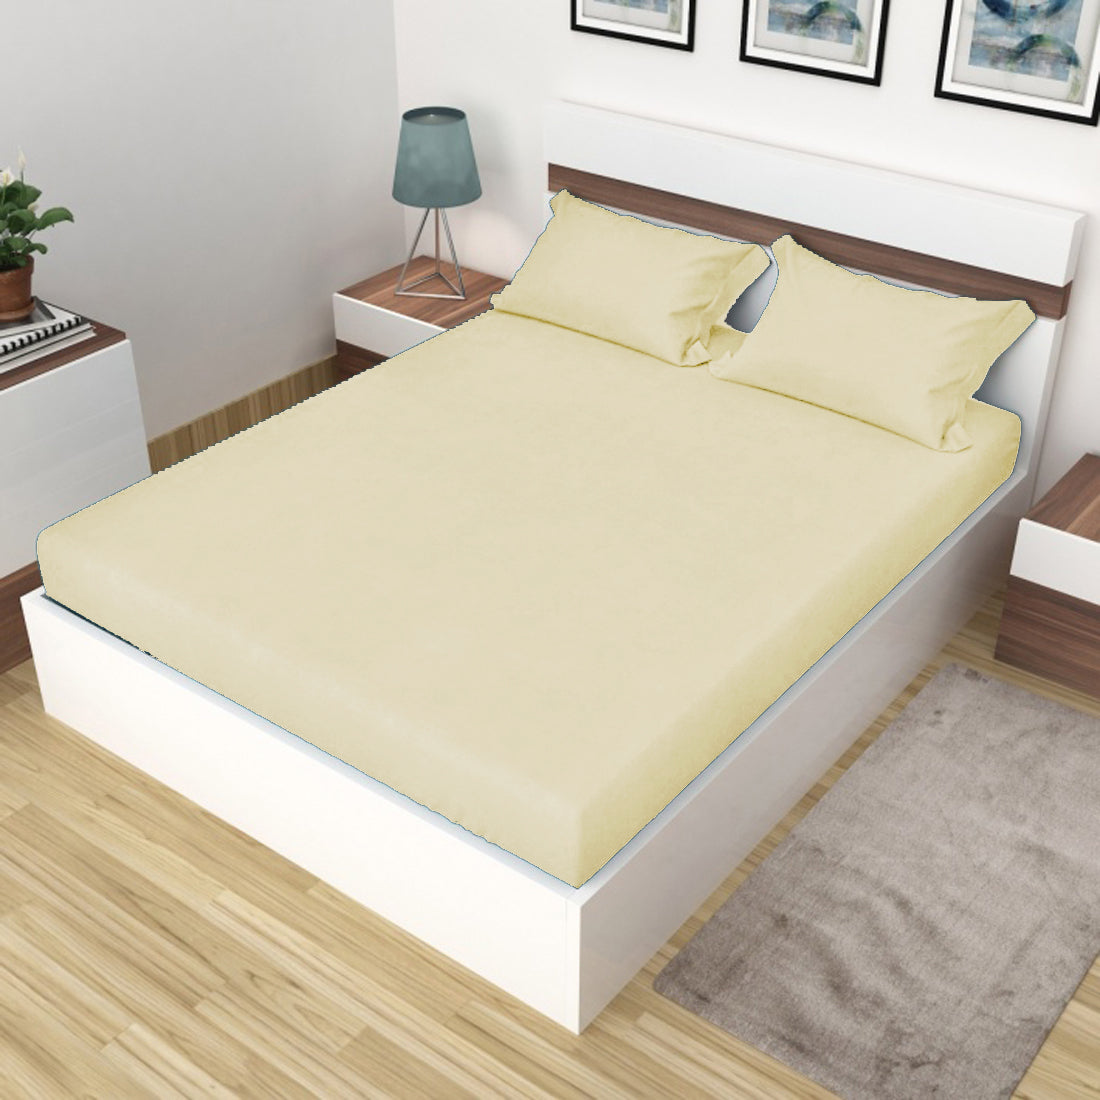 AURAVE Plain Cotton 210 TC Fitted Single Bedsheet - 36 x 72 inches - Beige